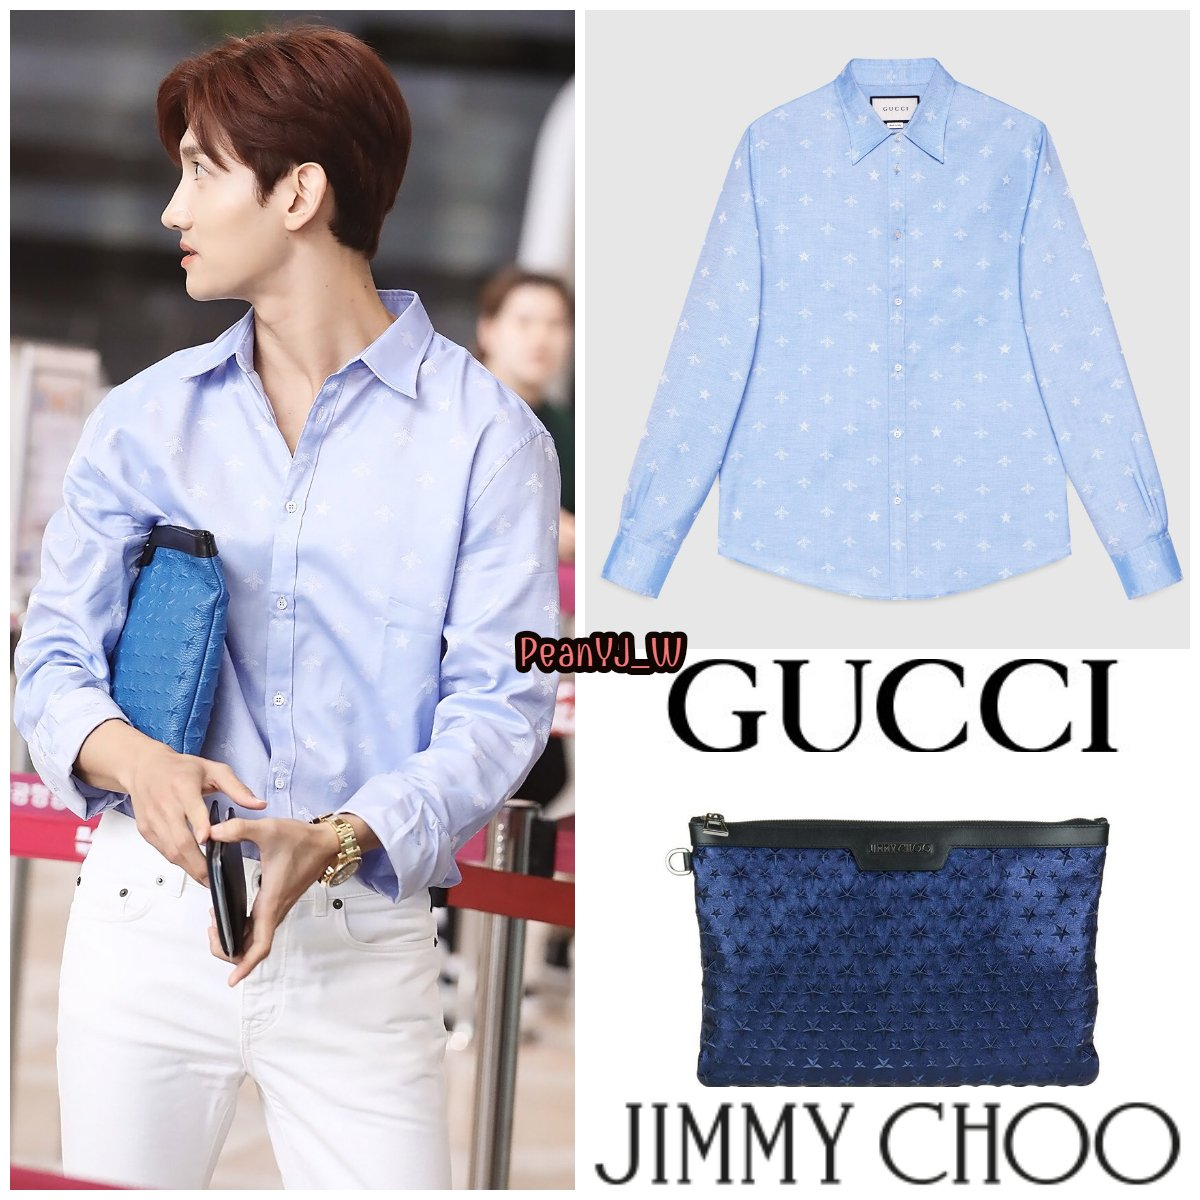 7cba5504 ... GUCCI Bee jacquard oxford Duke shirt Save for later $ 780 . JIMMY CHOO  Derek Clutch ~$ 1,000  https://www.instagram.com/p/BlDuULzgwFc/?taken-by=sw5ag_ …